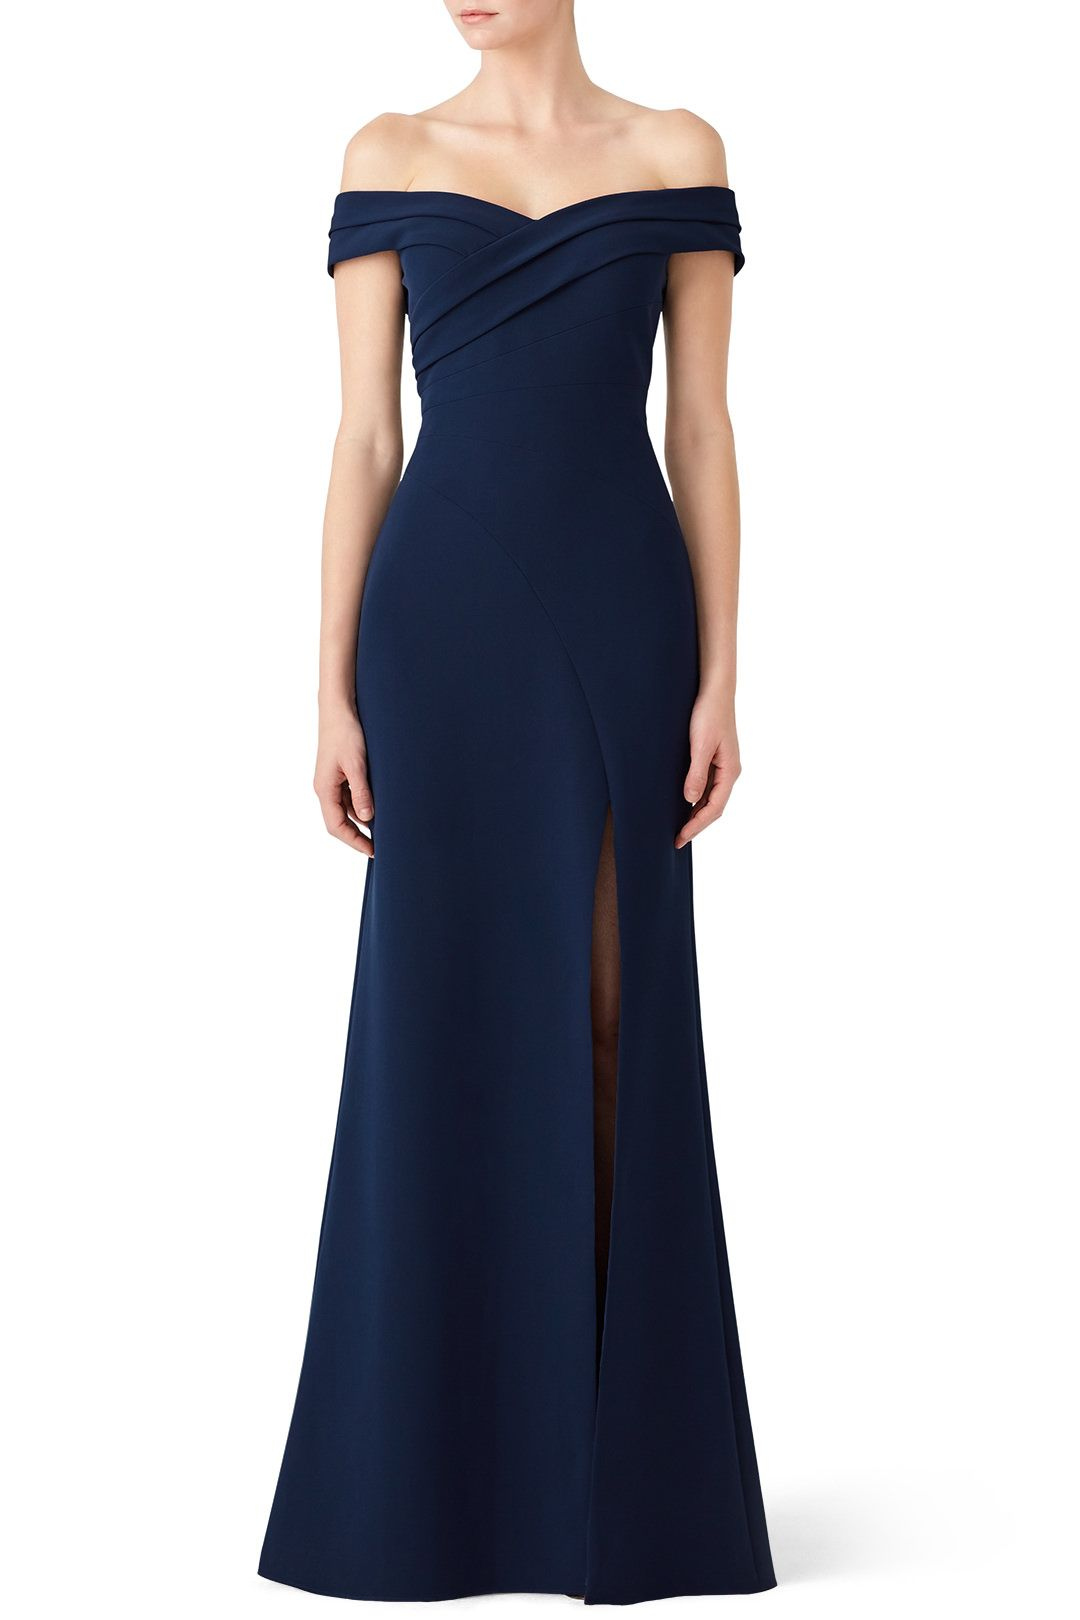 Rent Midnight Kyle Gown by Aidan Mattox for $70 - $120 only at Rent ...